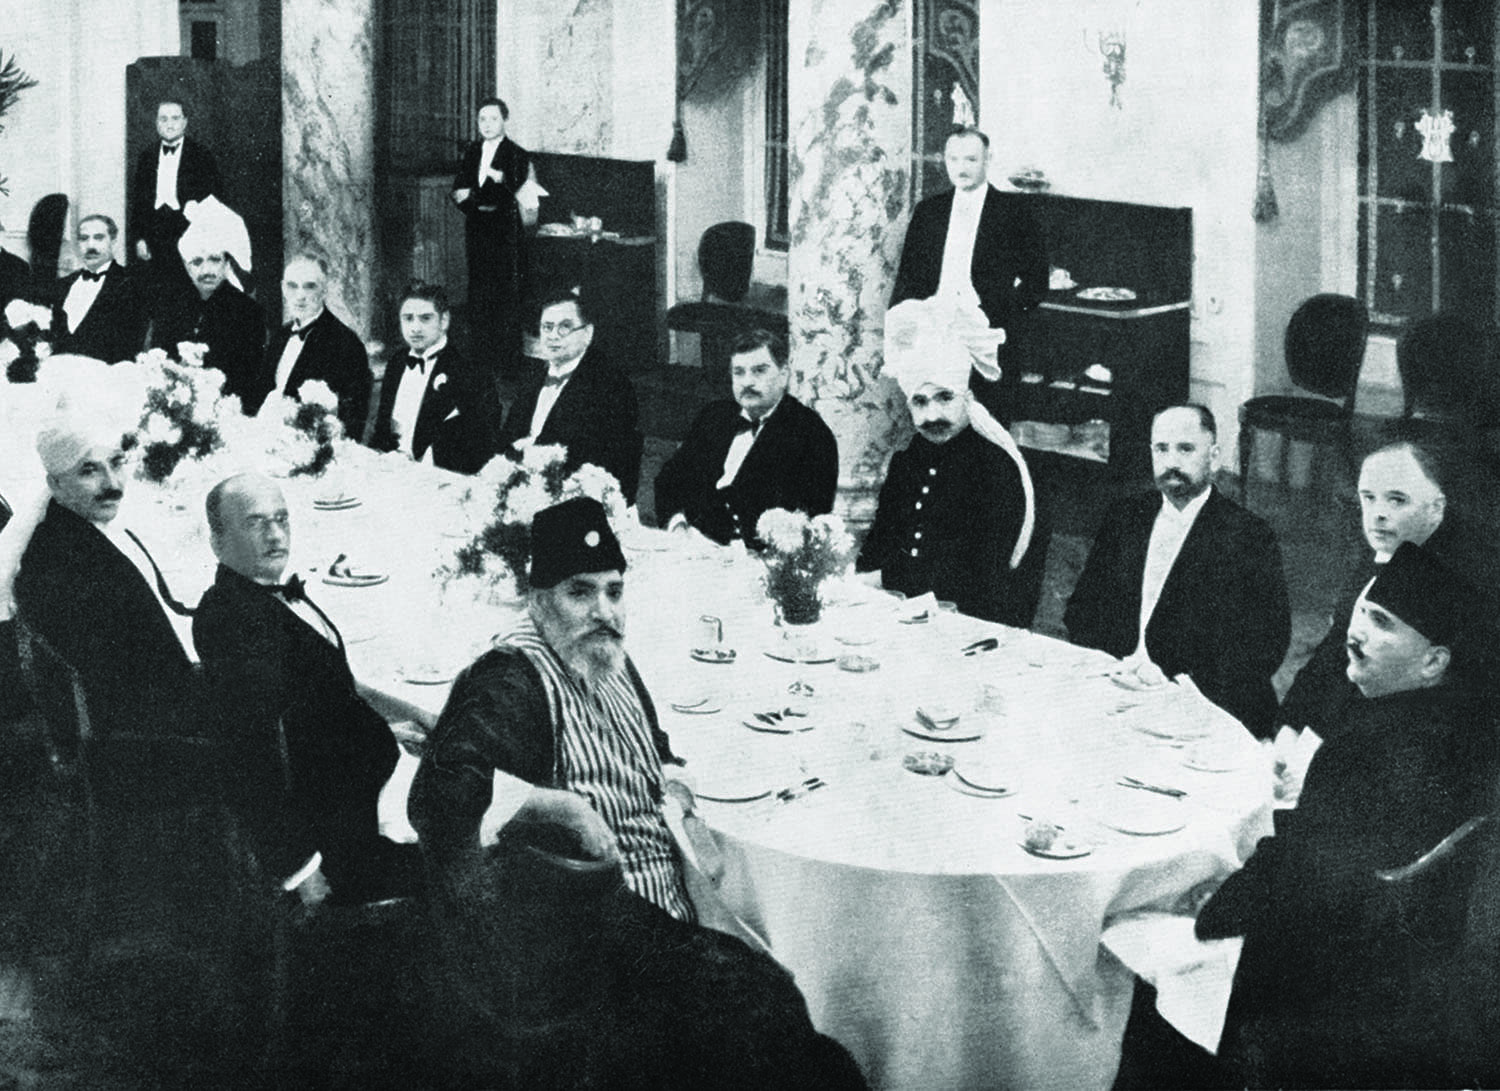 Allama Iqbal (extreme right) with other delegates at a reception following the Second Round Table Conference in London 1931.  Photo: Iqbal Academy.